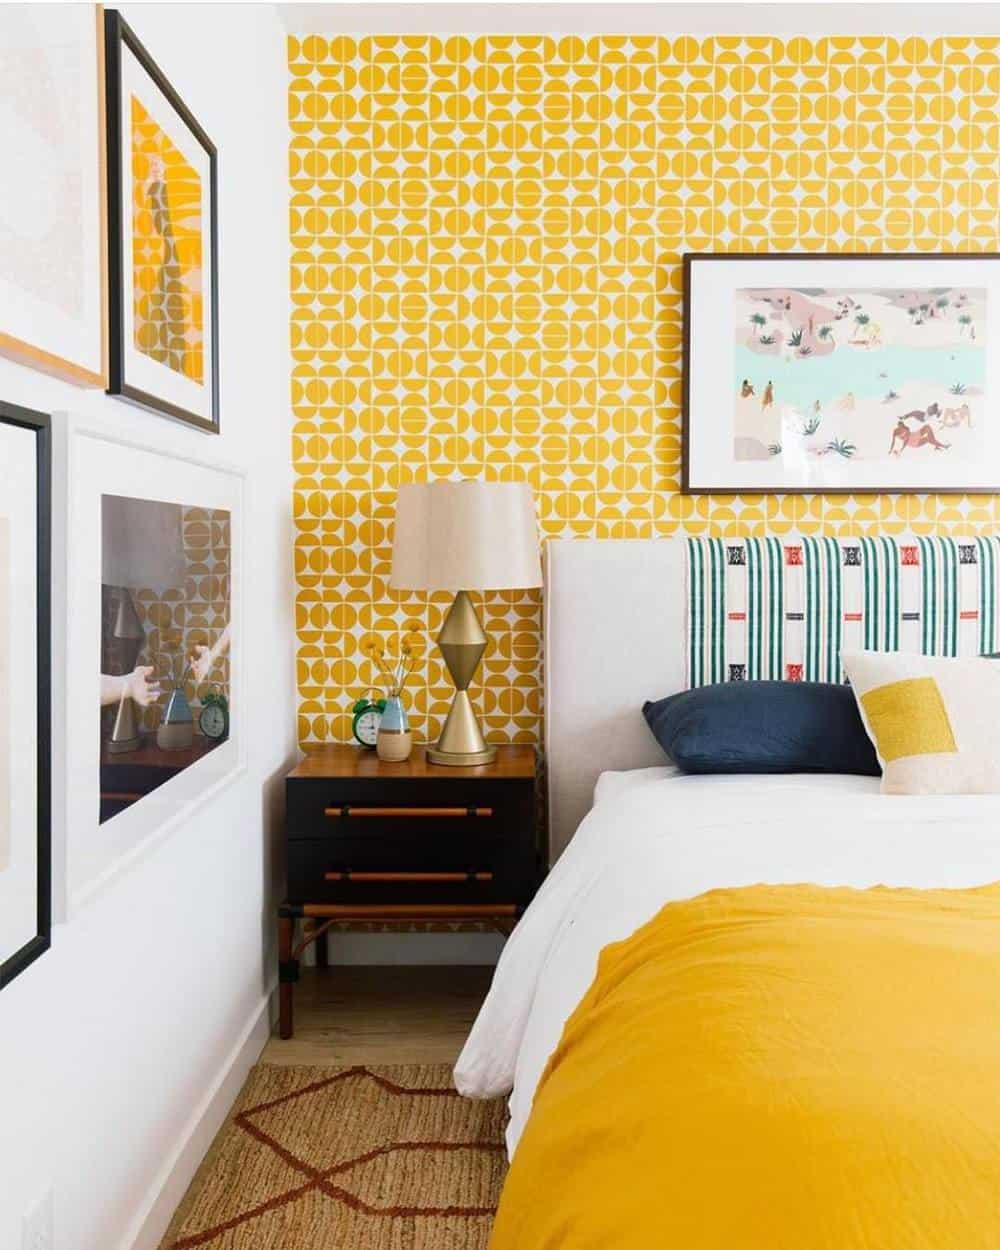 65 Amazing Small Bedroom Ideas to Create Space - Bold Colors Combinations